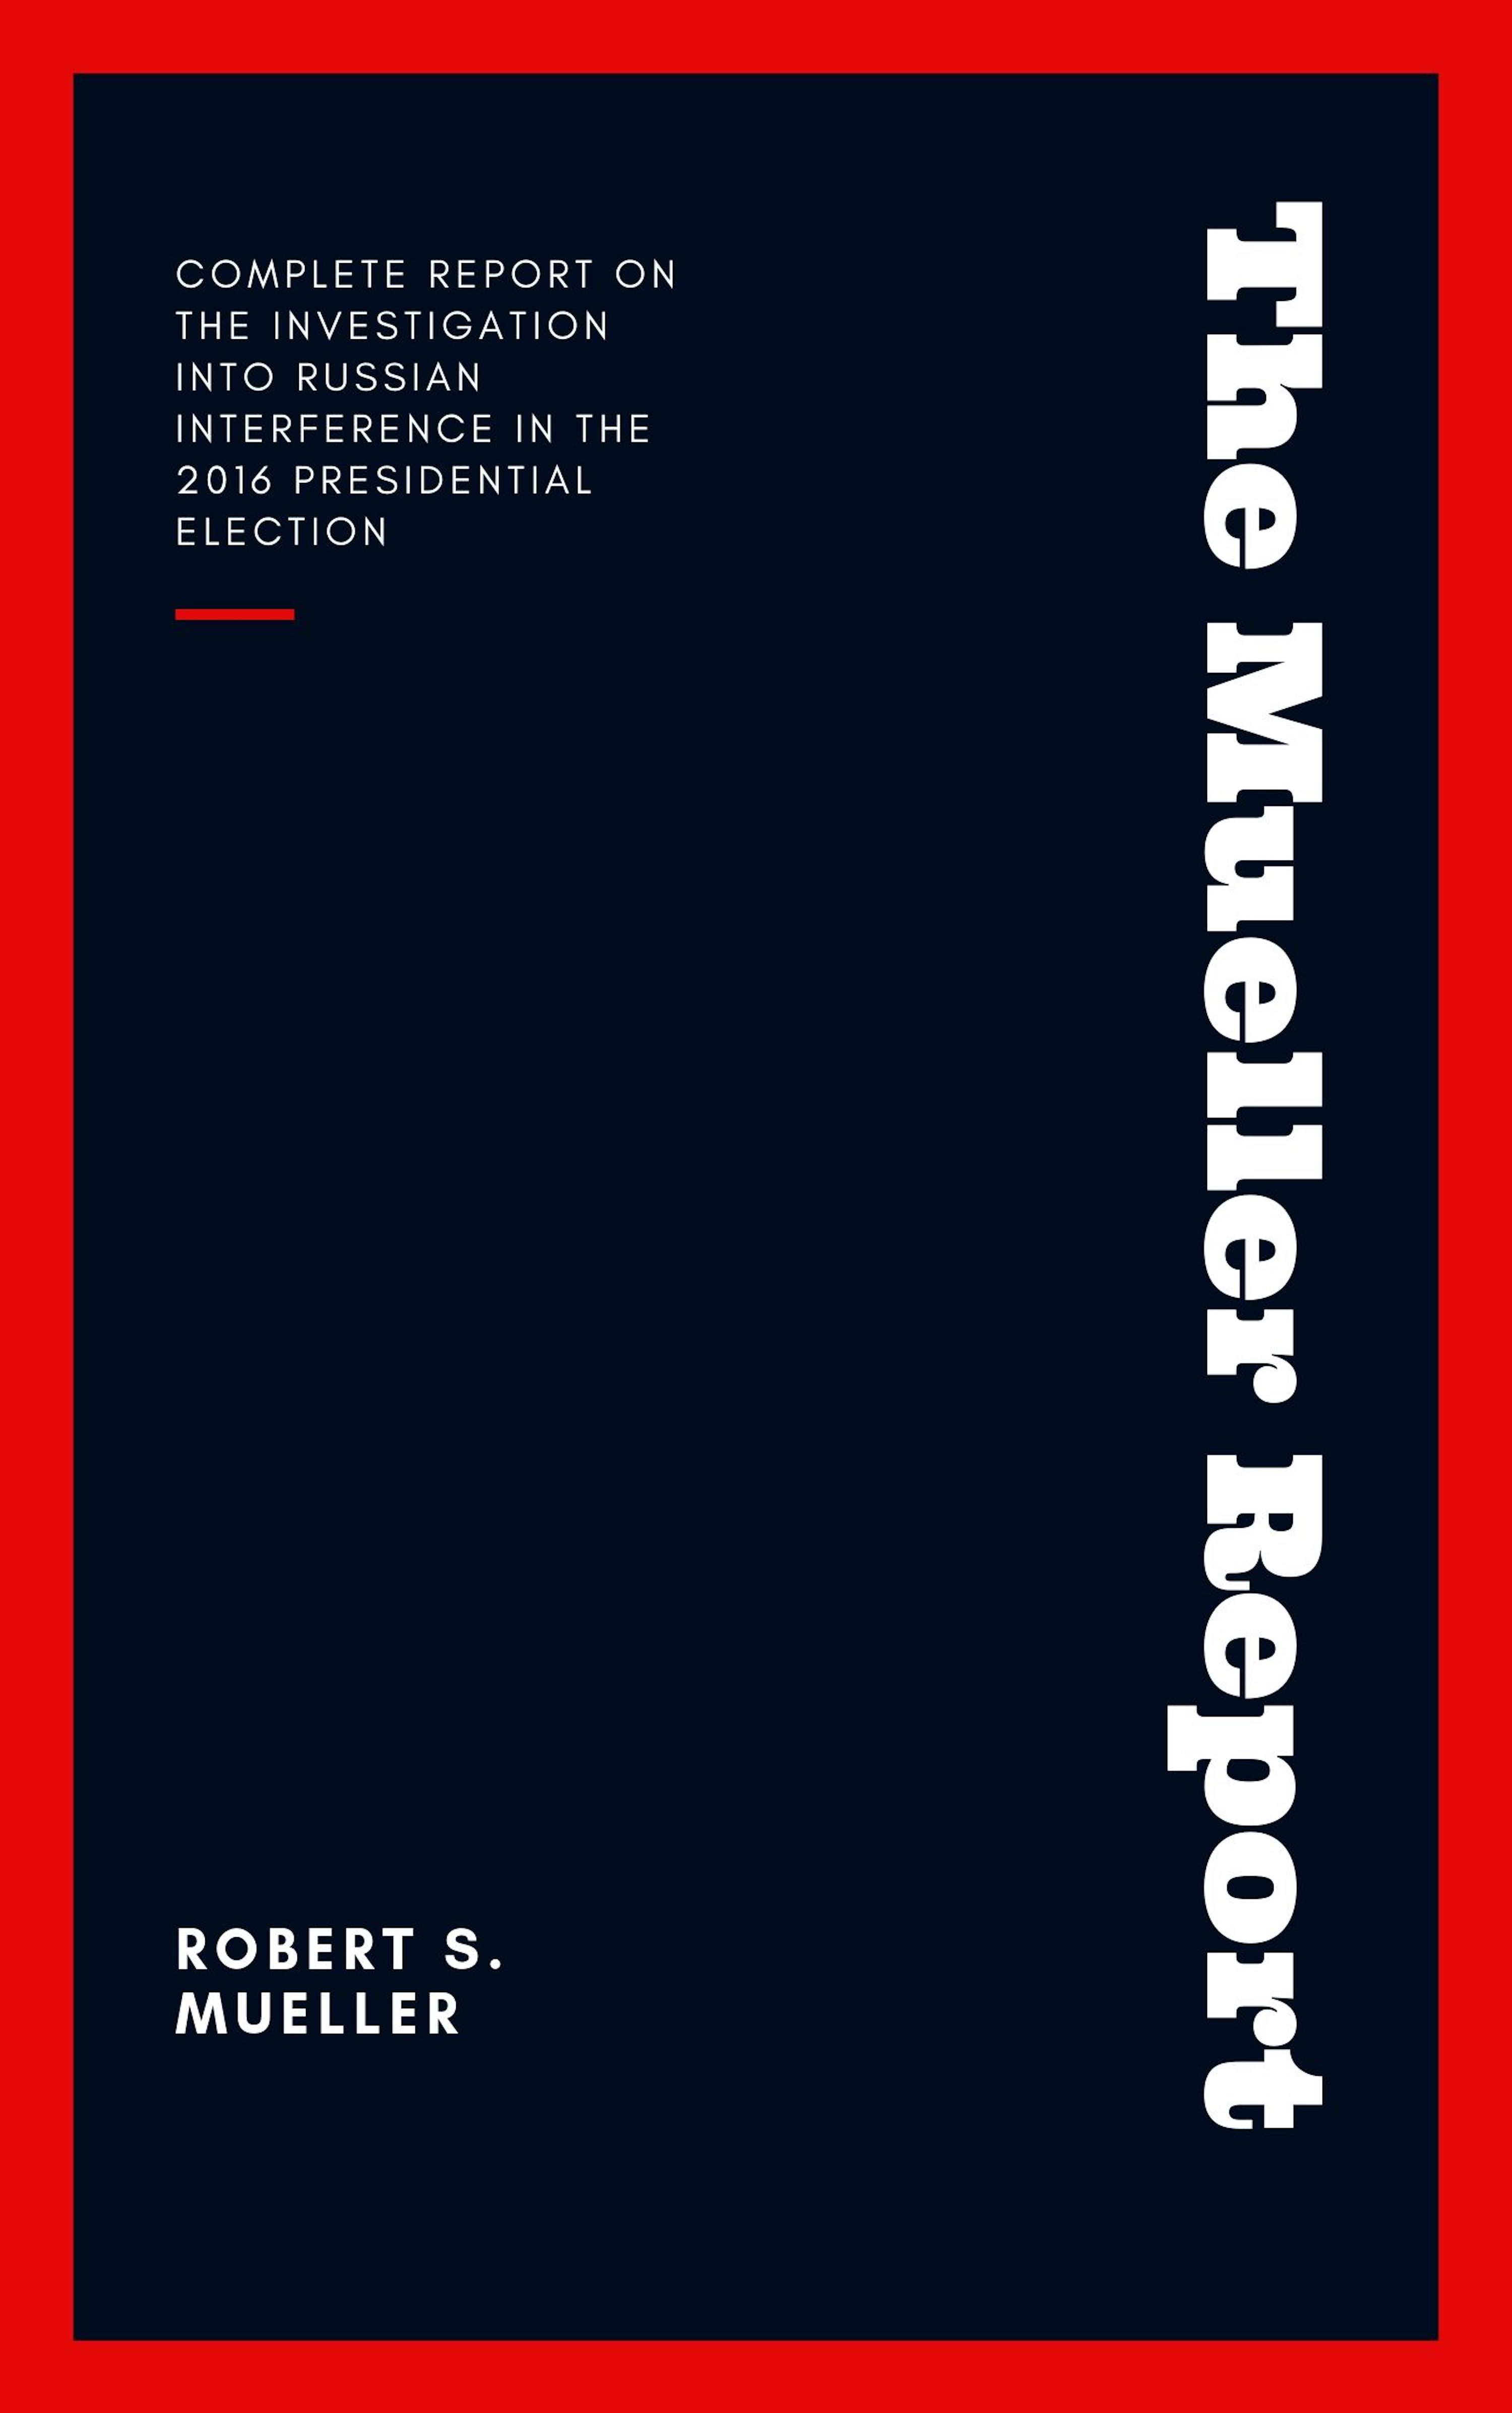 Robert S Mueller The Mueller Report: Report on the Investigation into Russian Interference in the 2016 Presidential Election